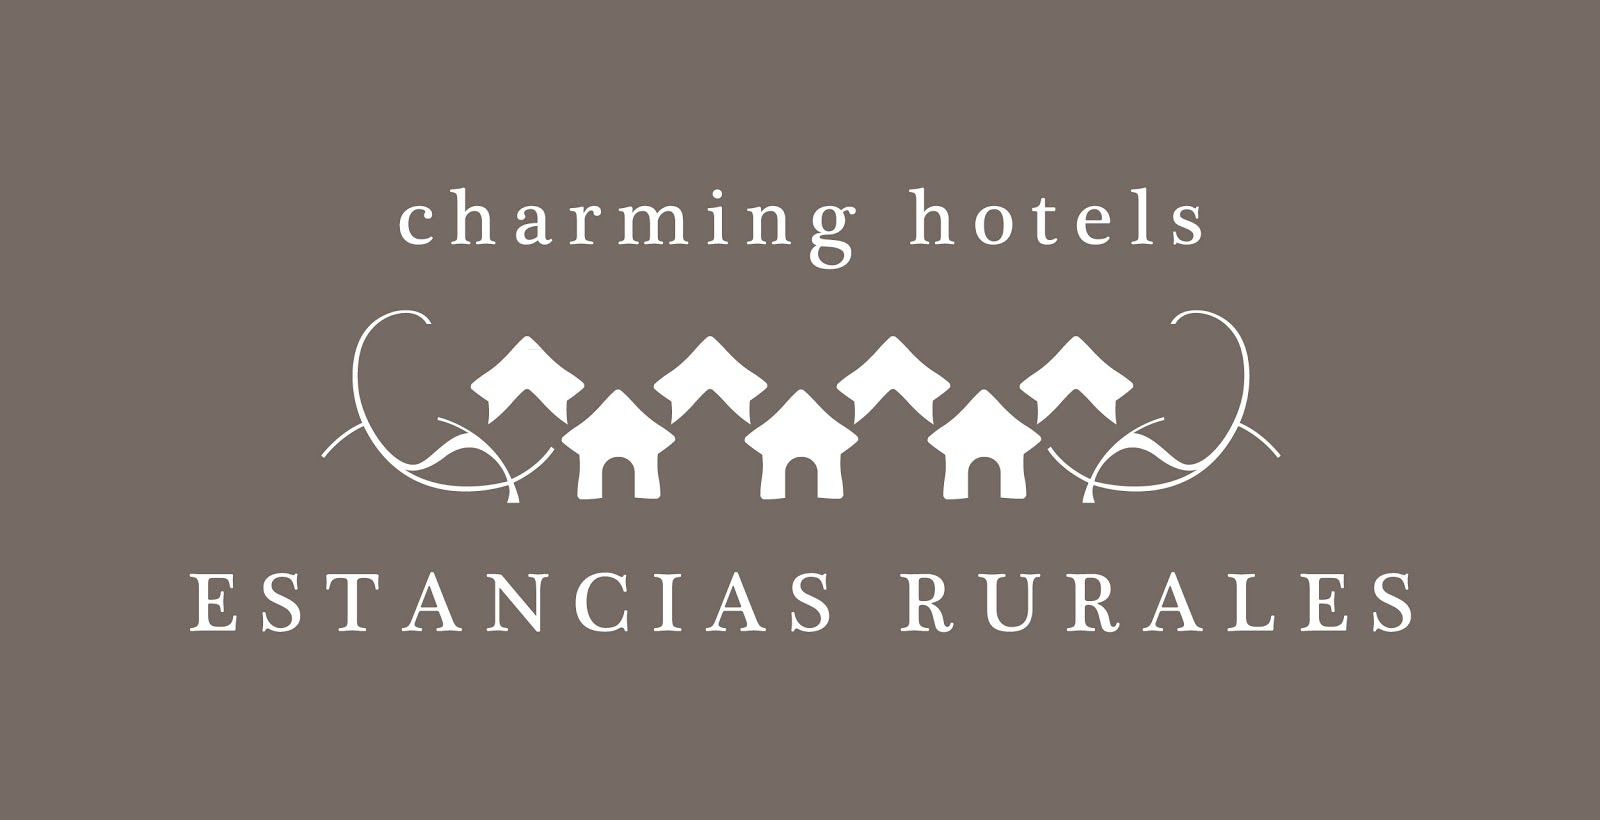 Estancias rurales charming hotels ofertas de ultima for Charming hotels